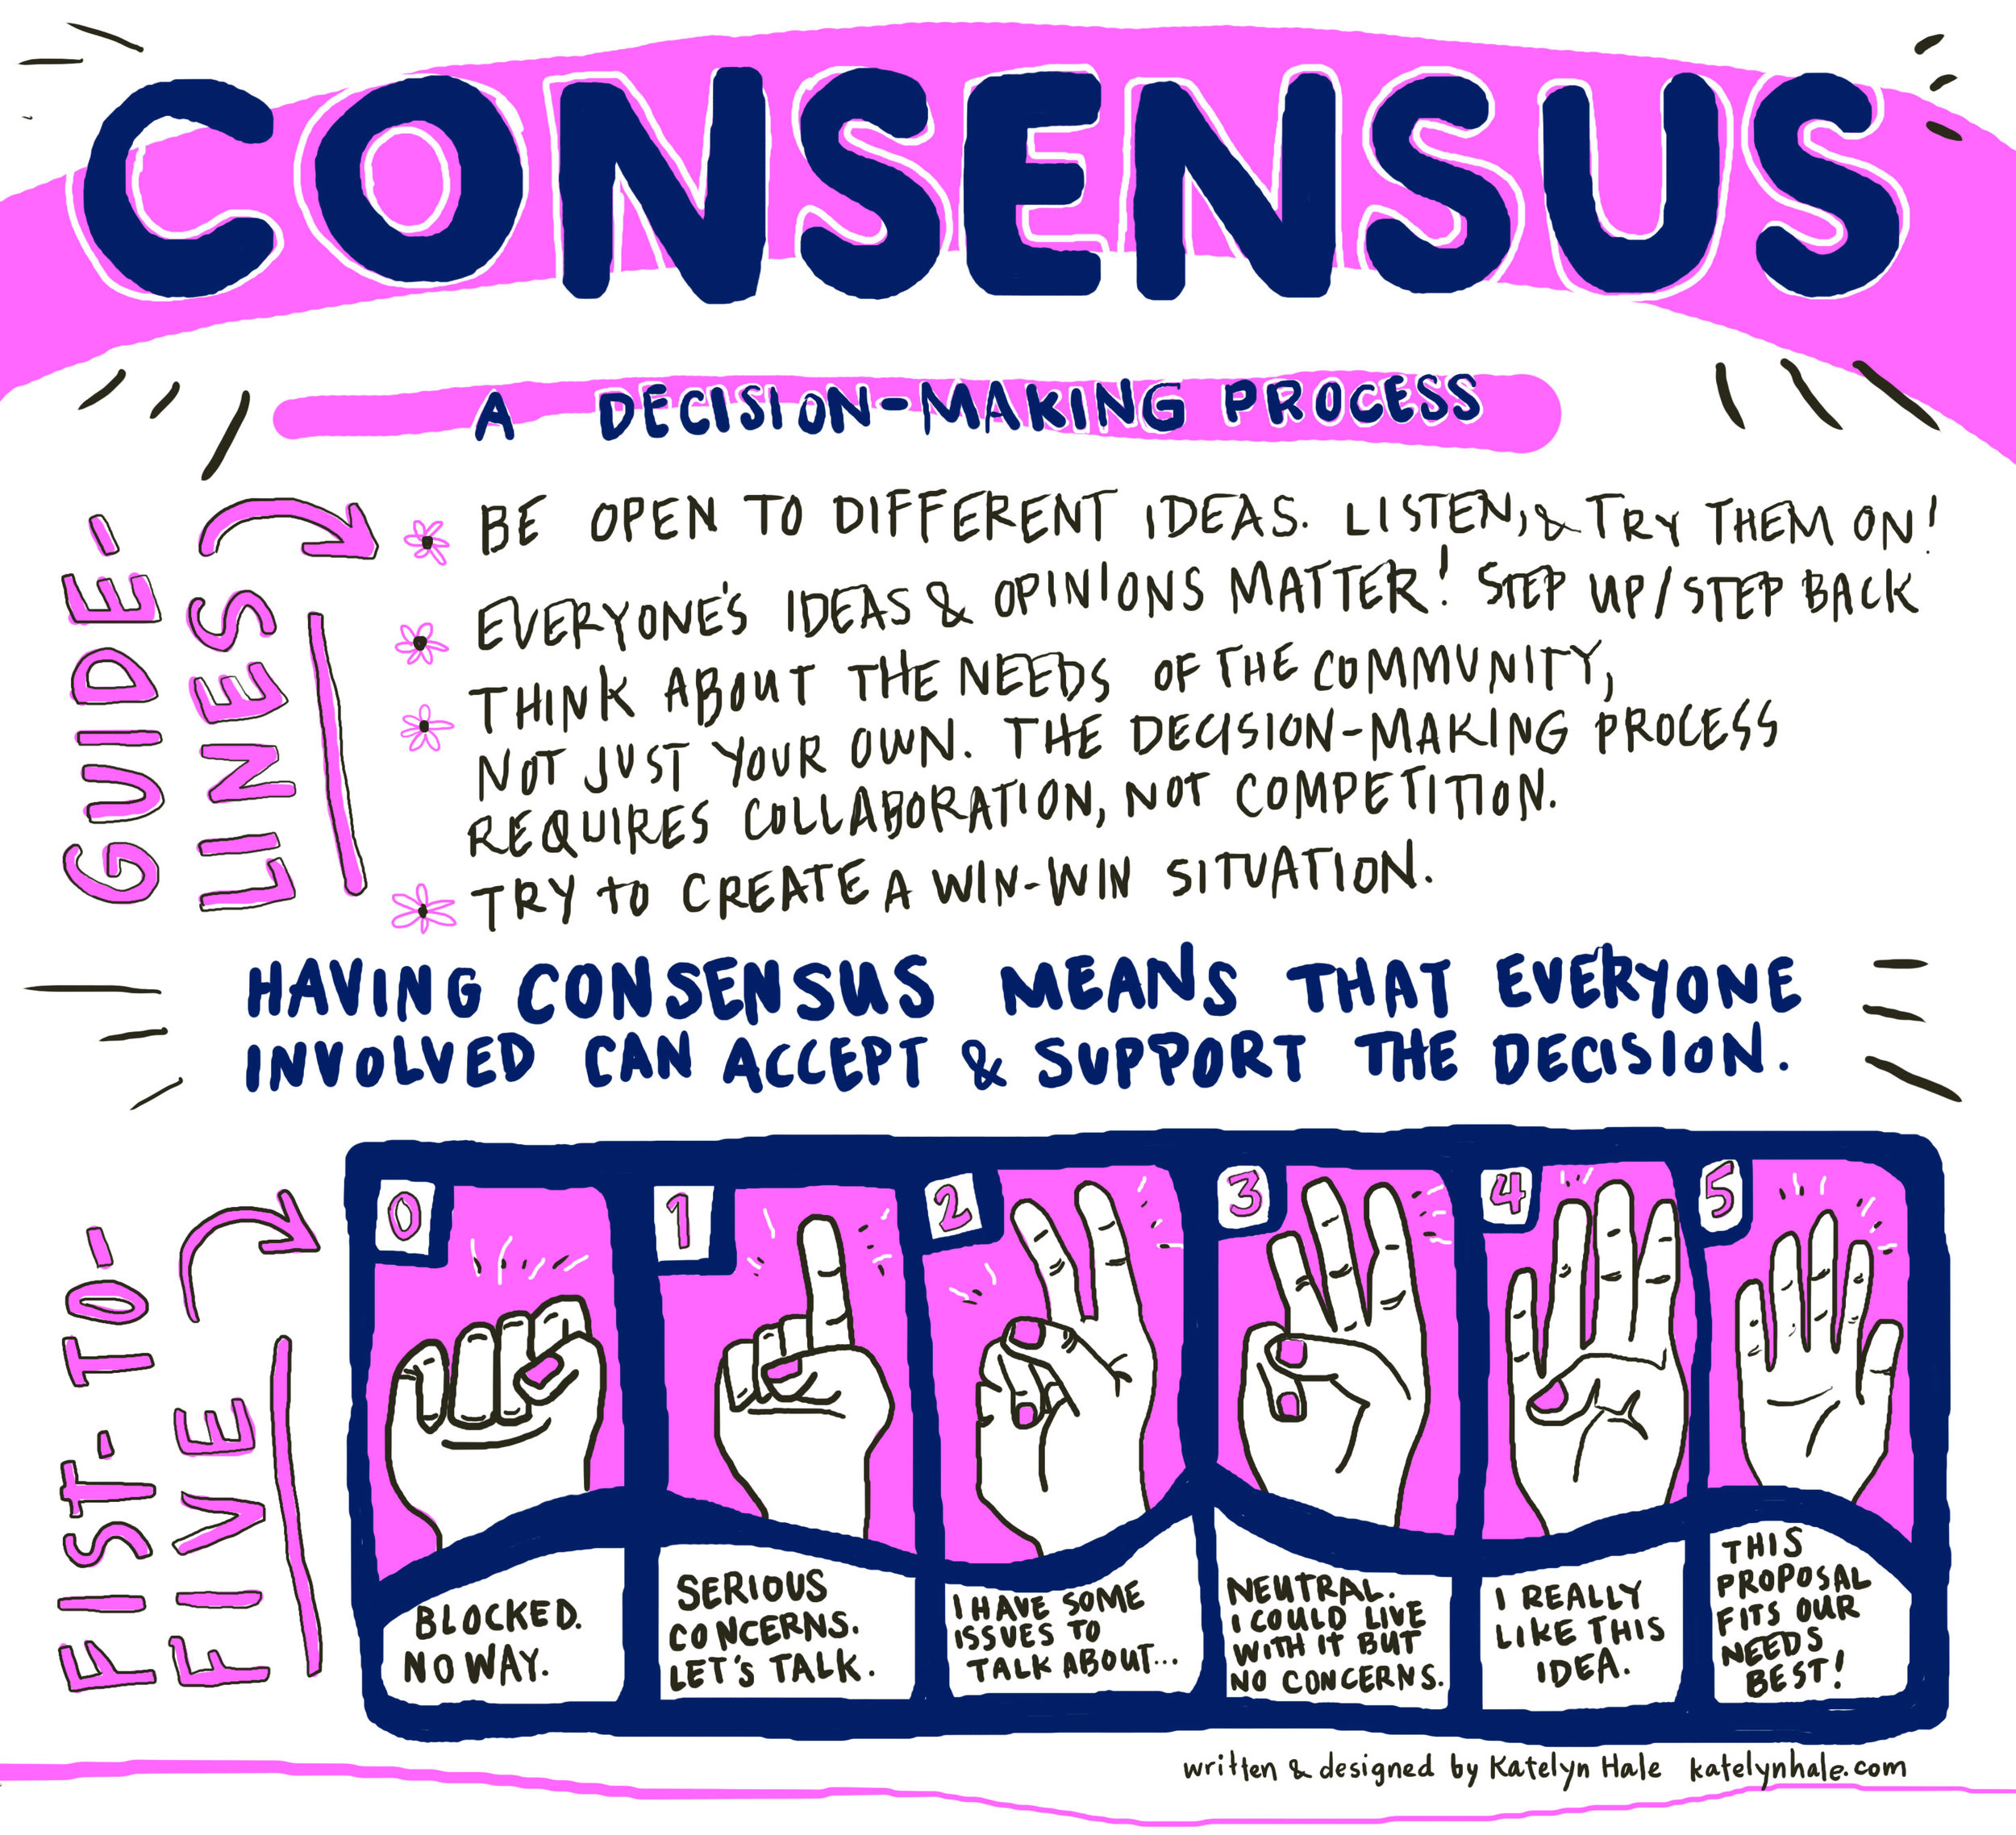 Fist-to-Five! Consensus